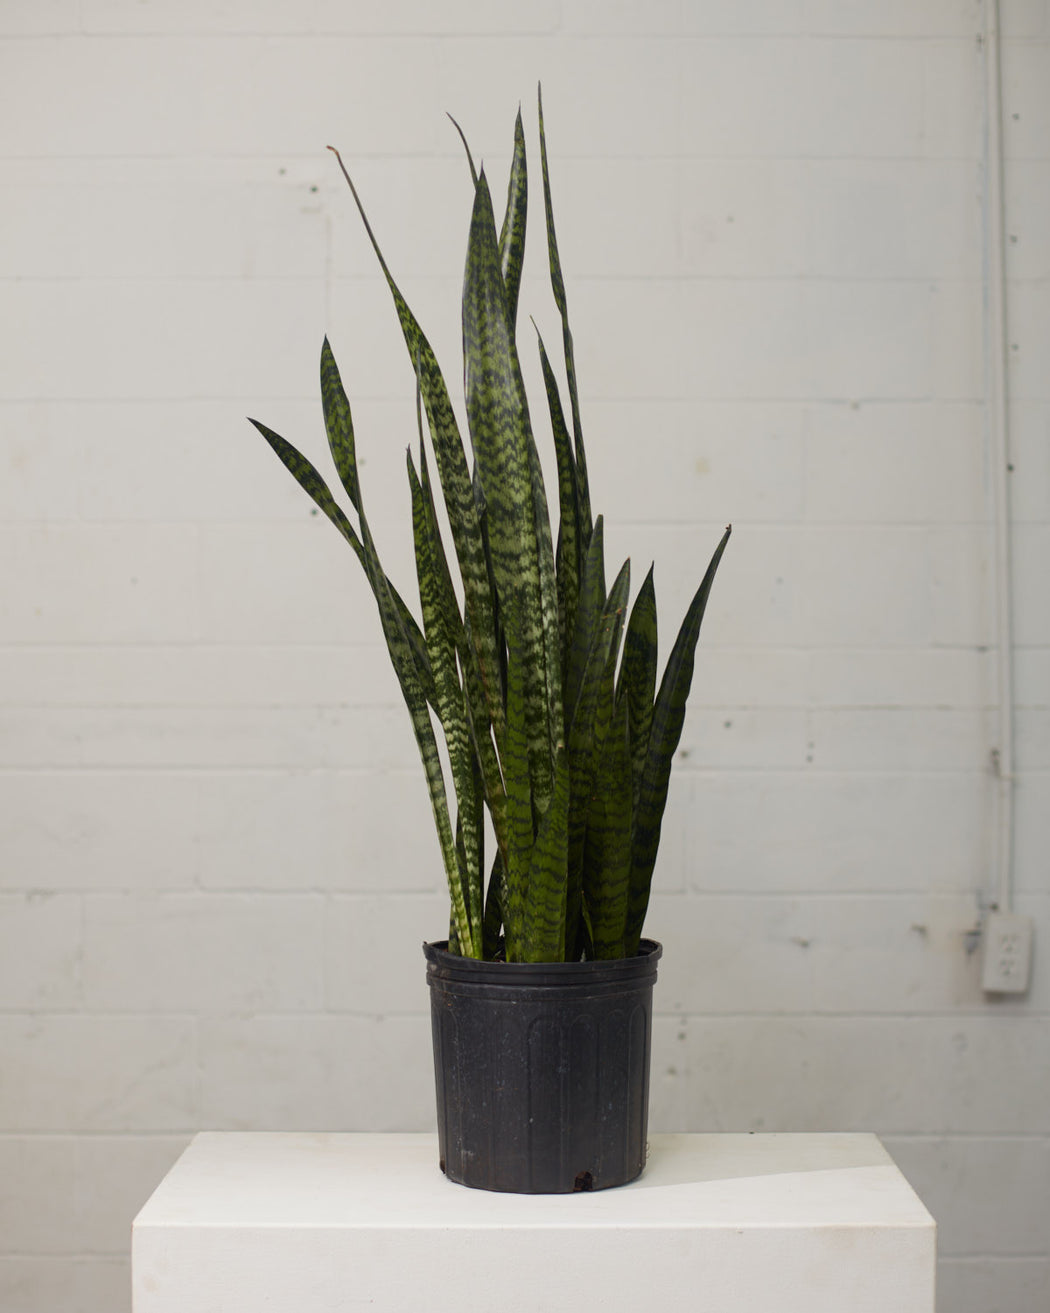 "SNAKE PLANT (SANSEVIERIA 'ZEYLANICA') 10"" Grower Pot (2.5-3' tall)"